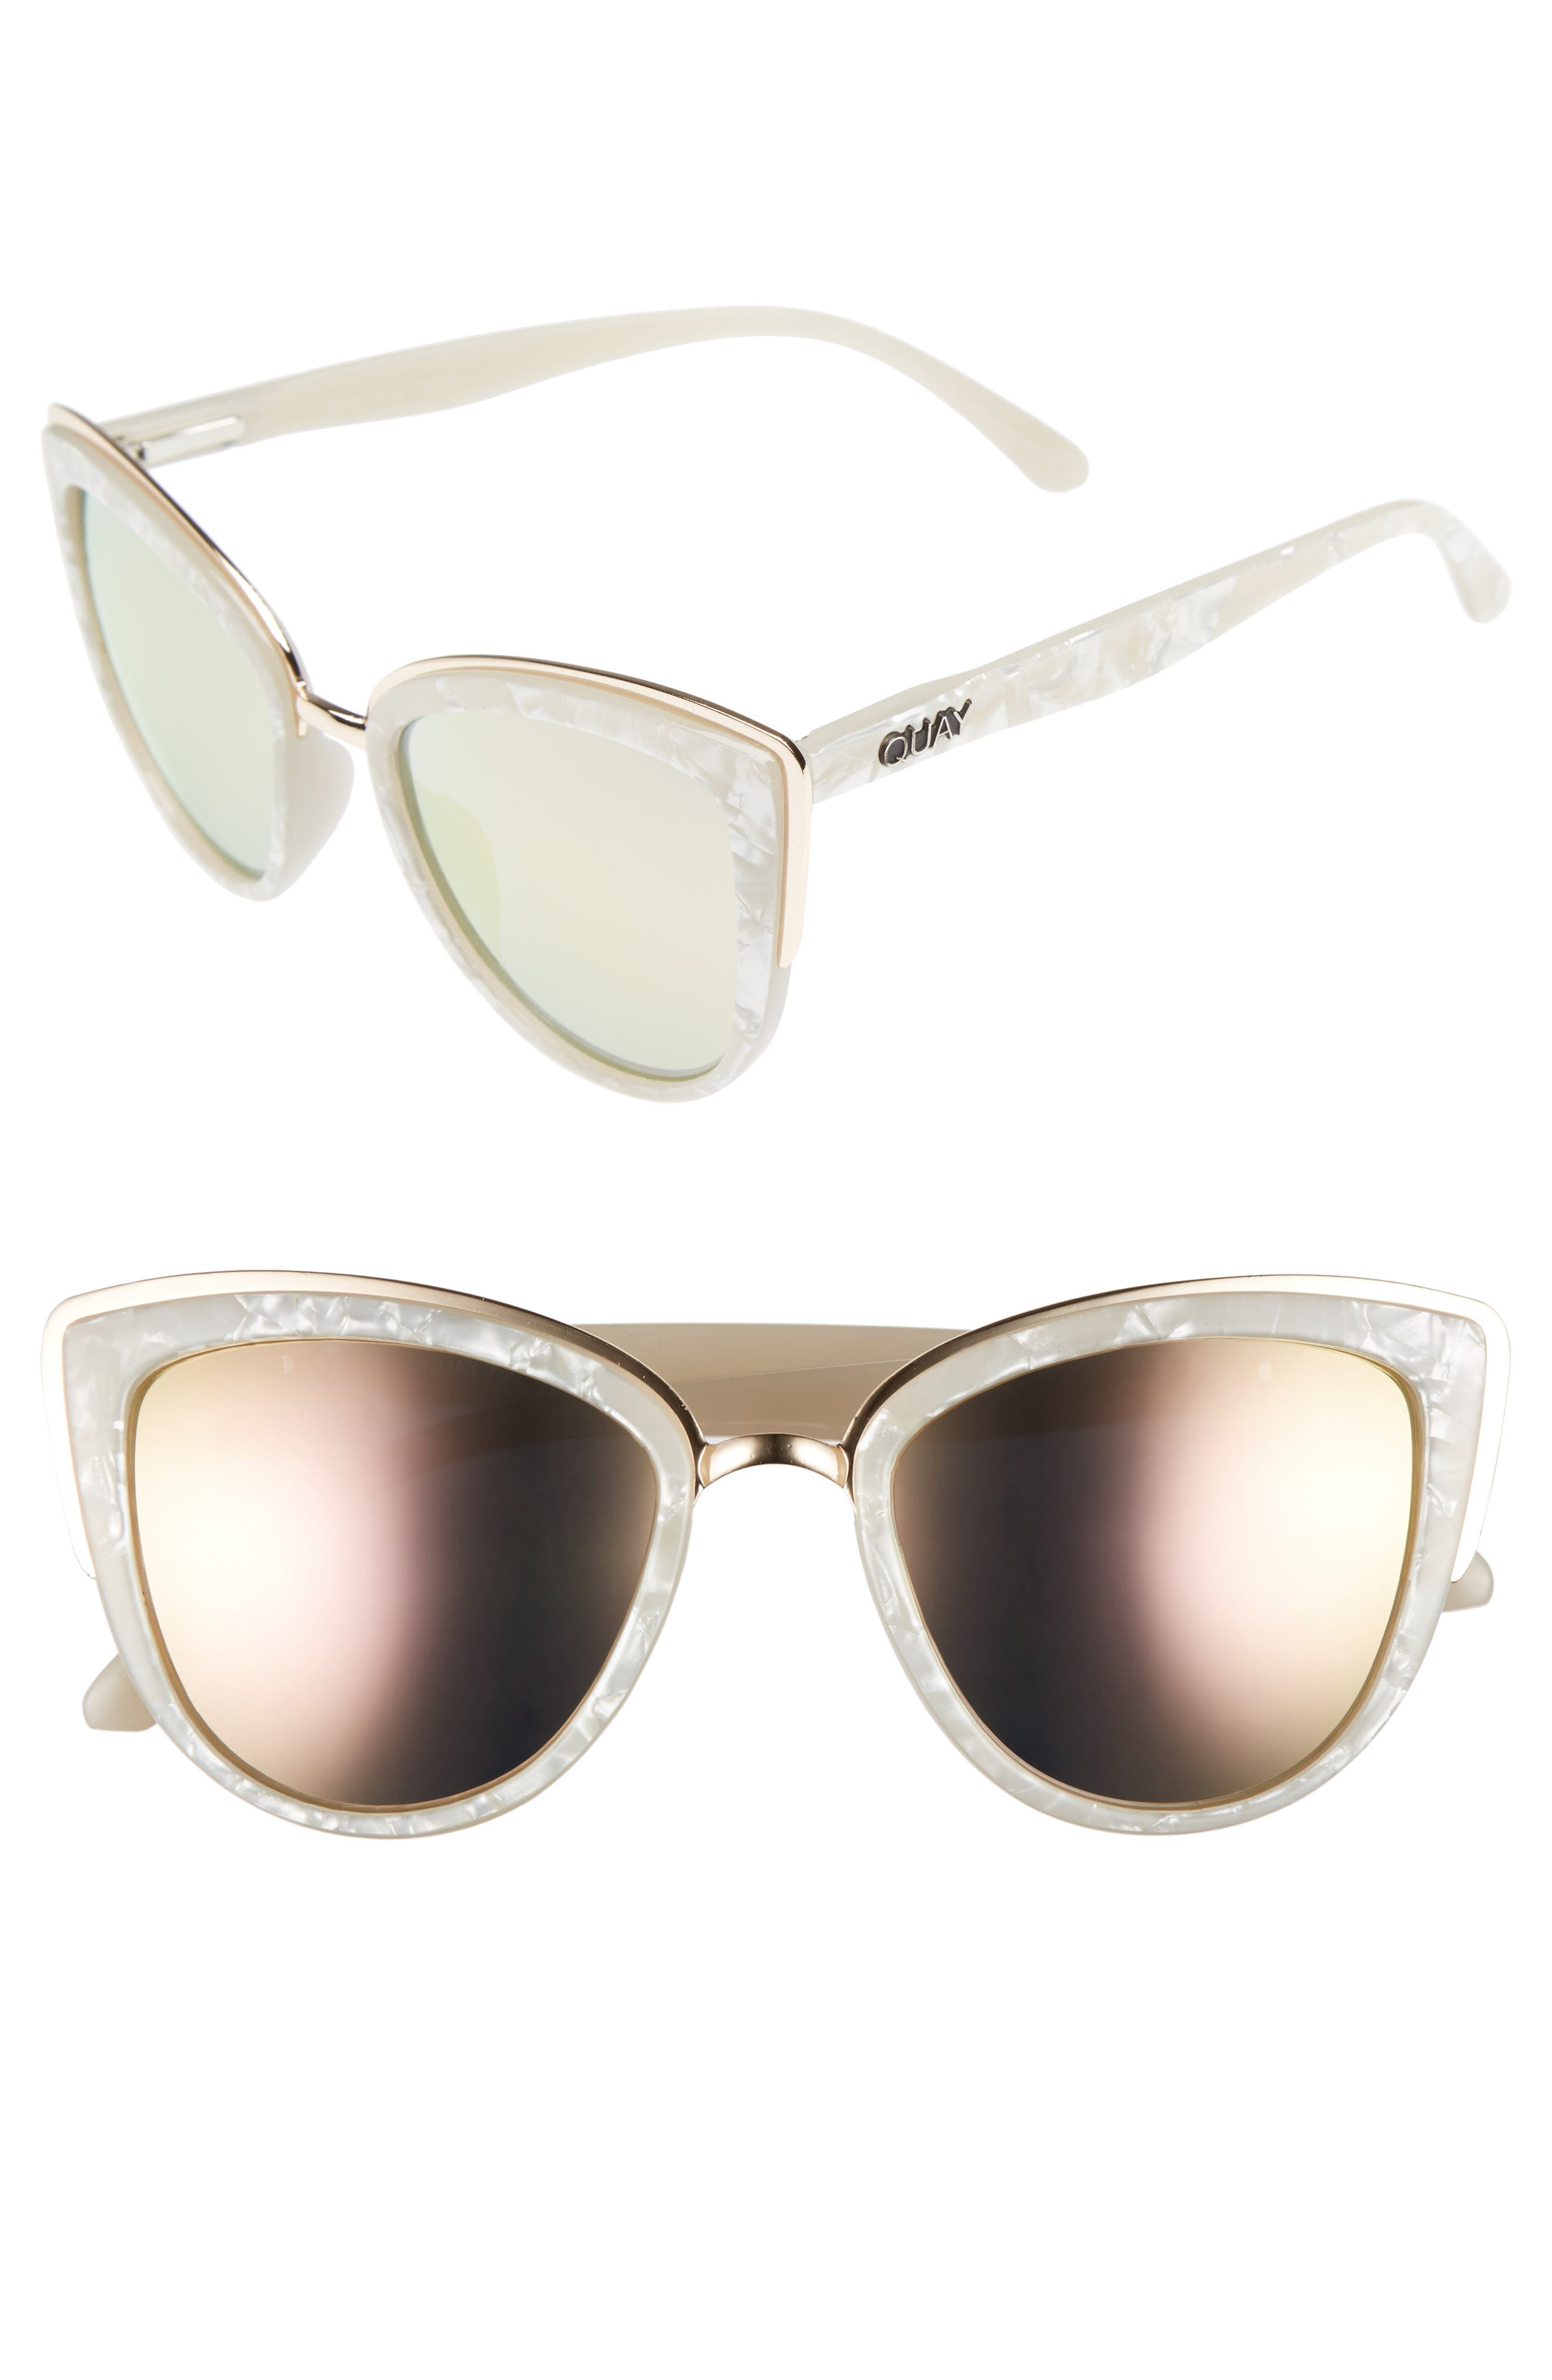 Quay Australia 'My Girl' 50mm Cat Eye Sunglasses